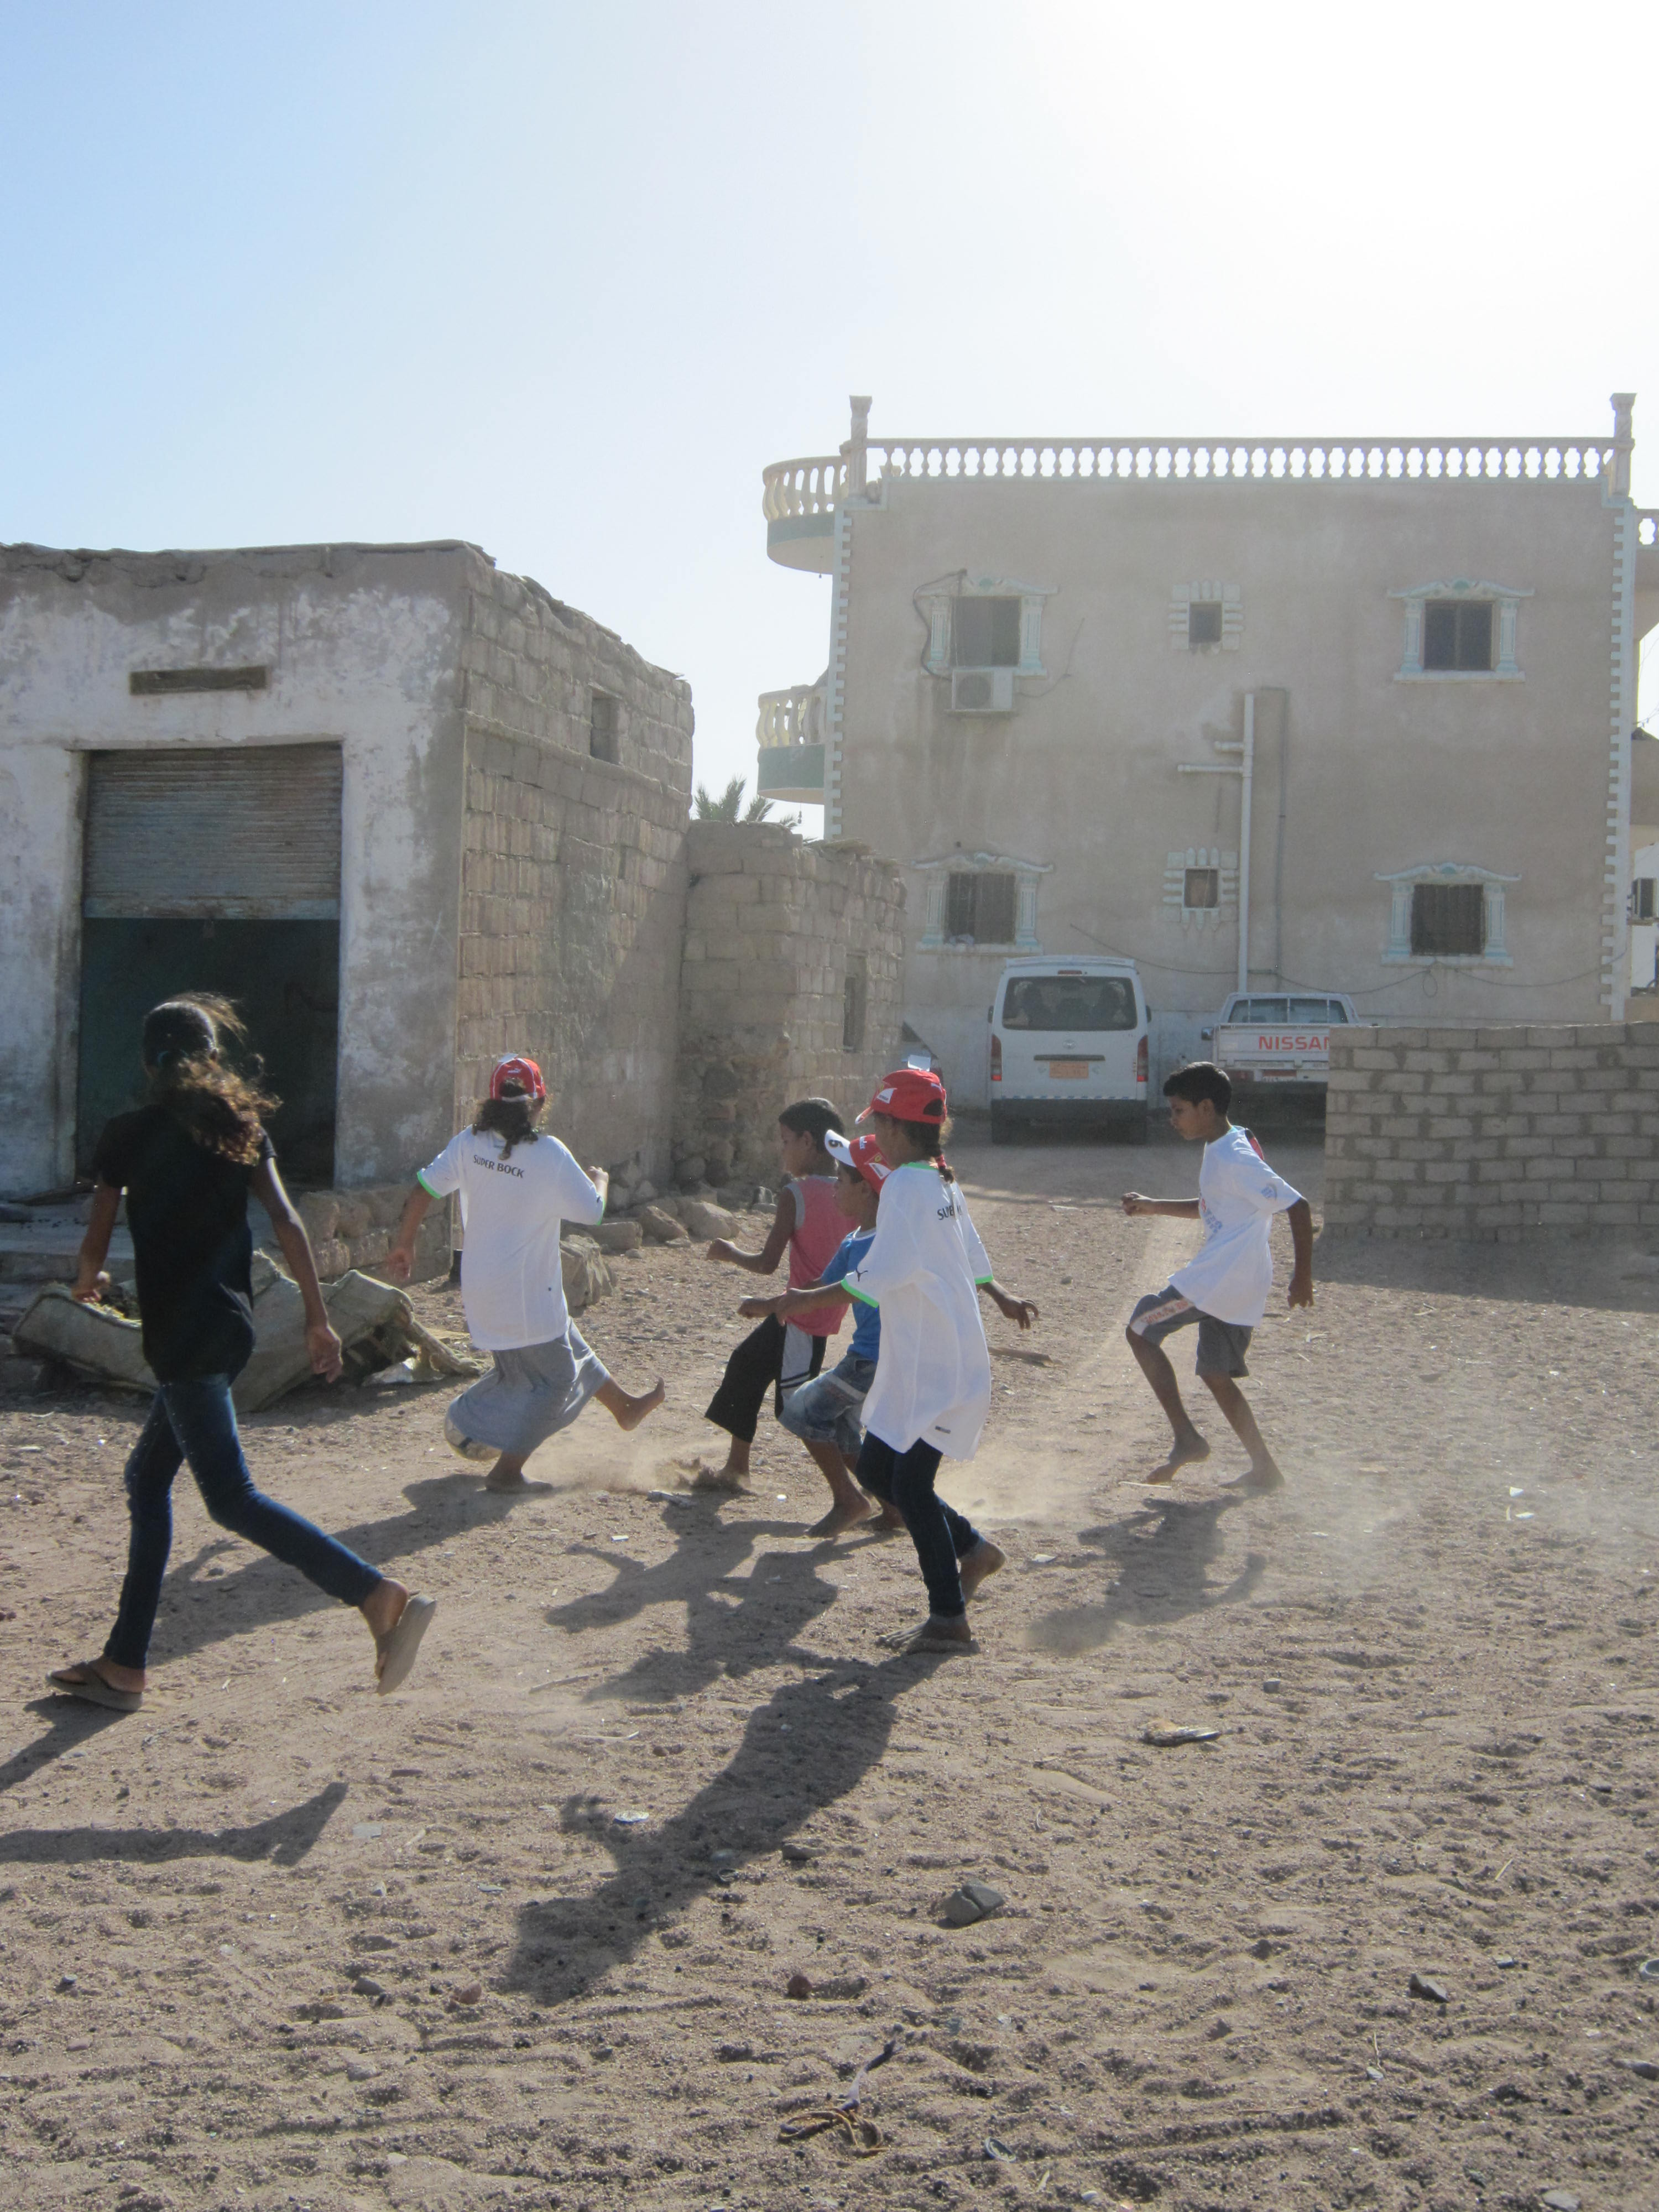 Sports clothes for bedouin children in Dahab, Egypt